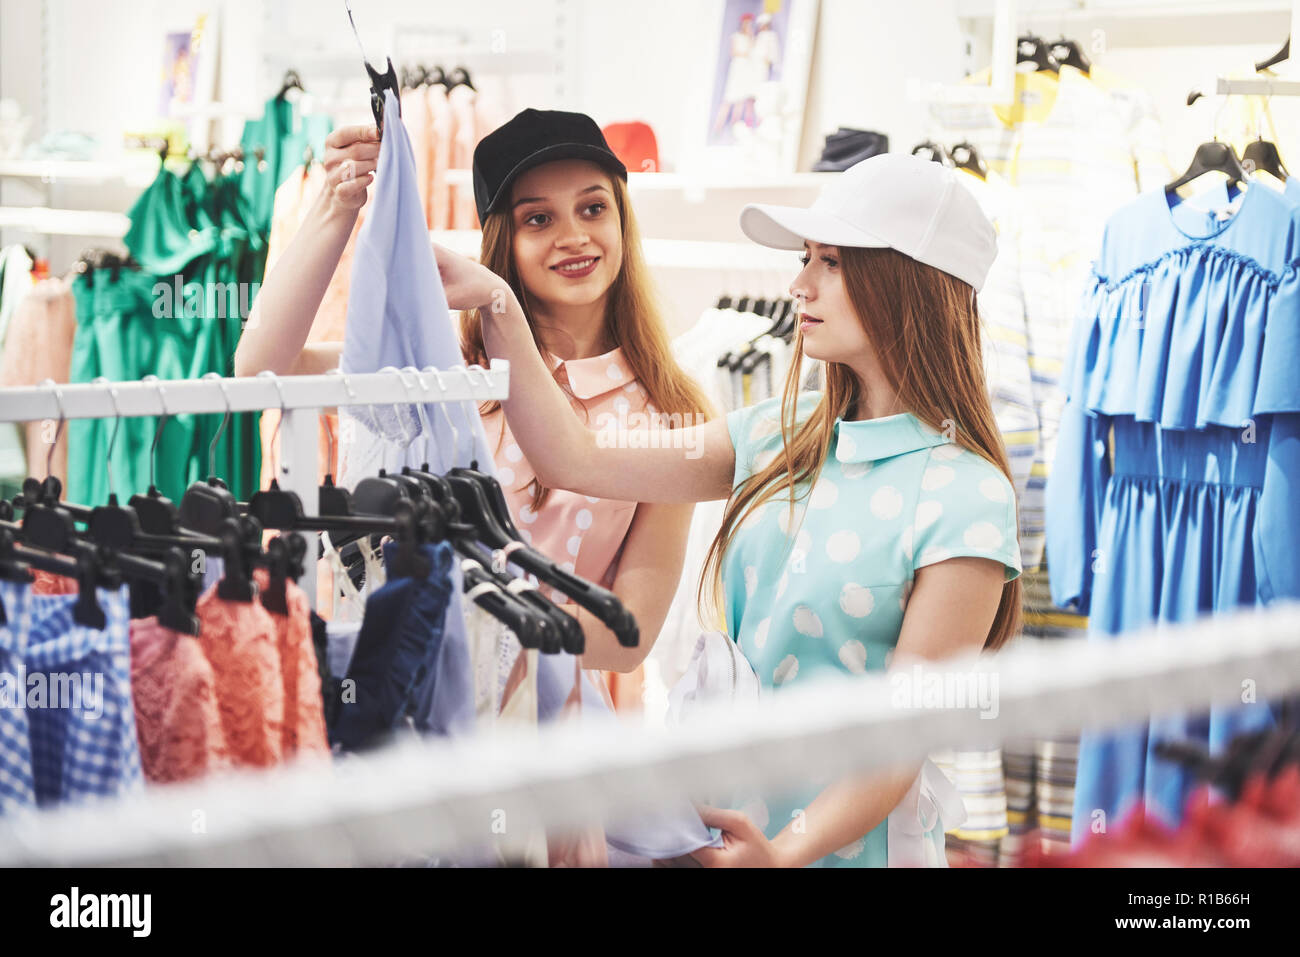 Shopping therapy in action. Rear view of two beautiful women with shopping bags looking at each other with smile while walking at the clothing store - Stock Image